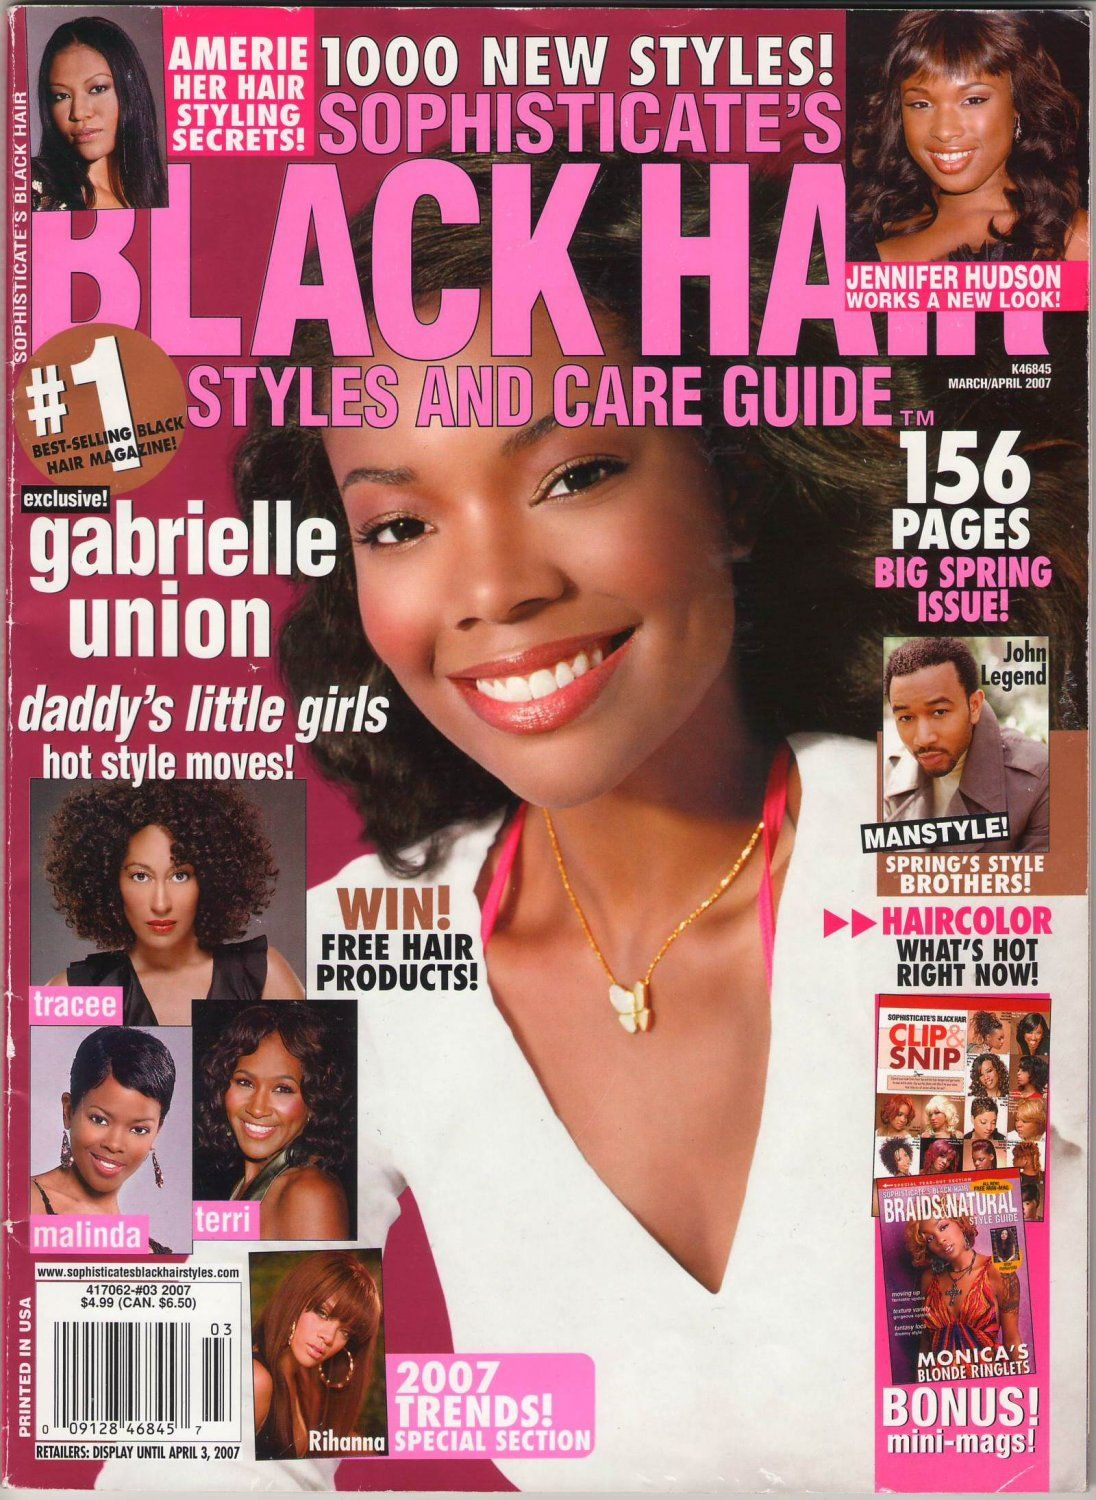 Sophisticate S Black Hair Styles And Care Magazine Guide Amerie Her Hair Styling Secrets Black Hair Black Hair Magazine Black Hair Care